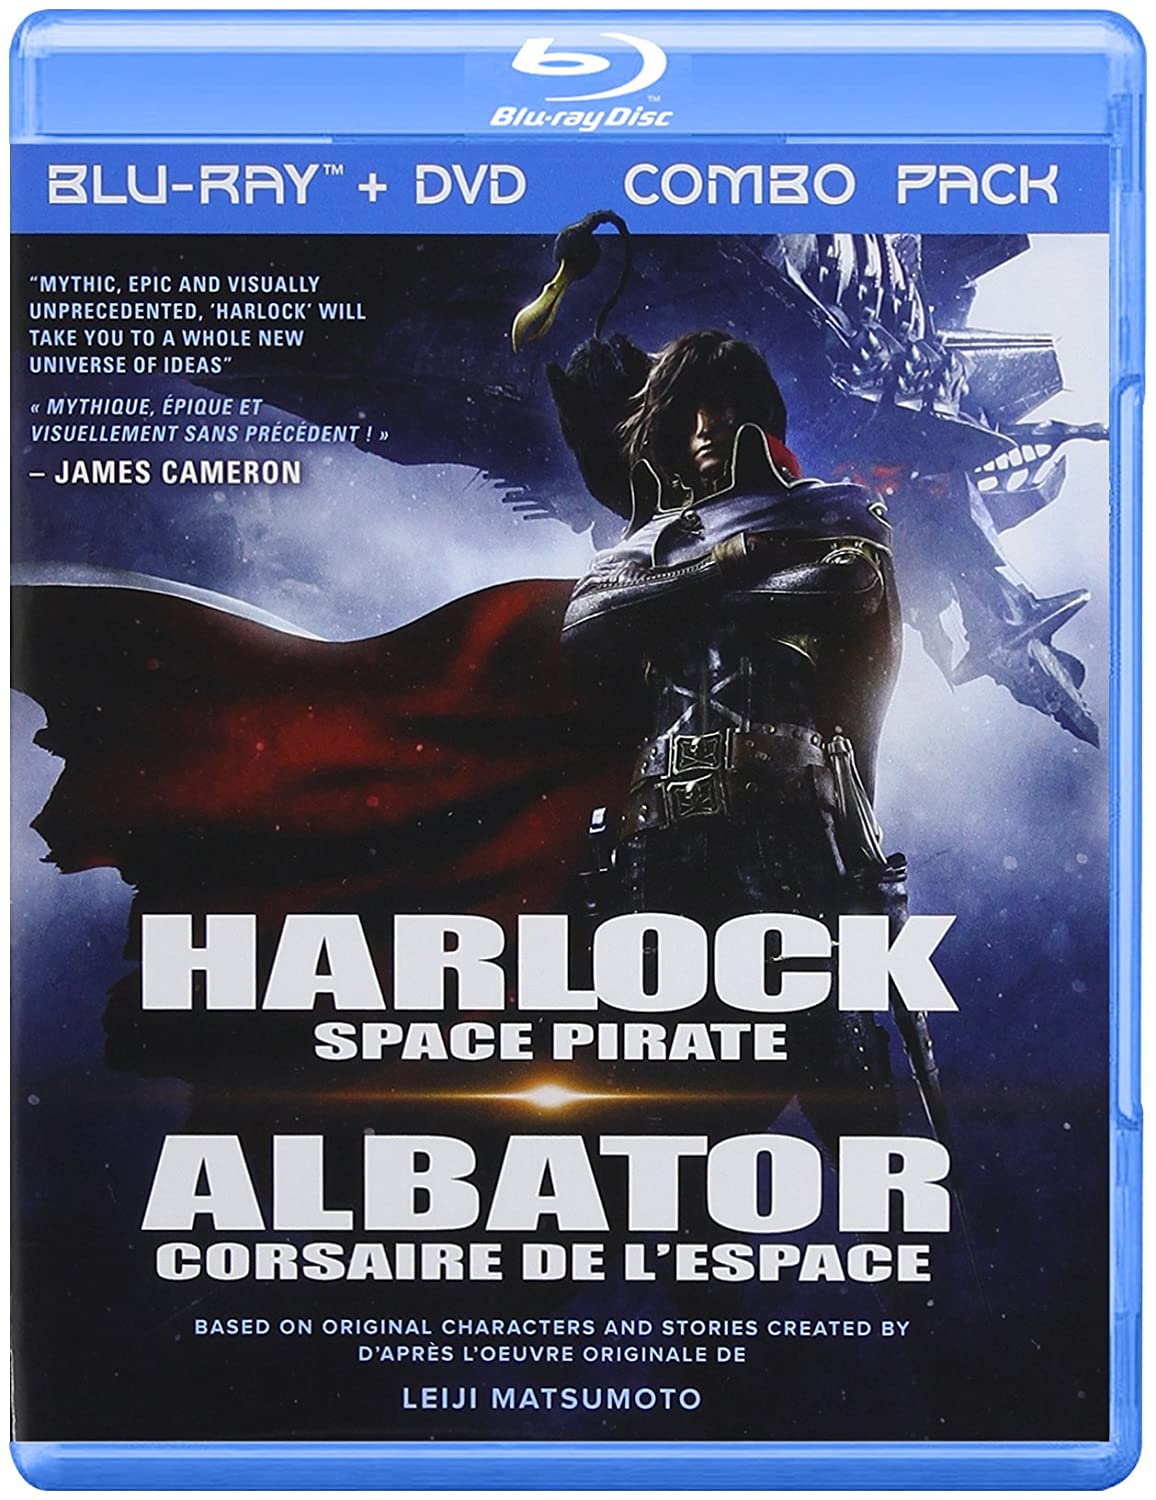 Harlock Space Pirate / Albator - Corsaire De L'Espace [Blu-ray] (Version française) N/A UV/DEP Cartoons & Animation Movie